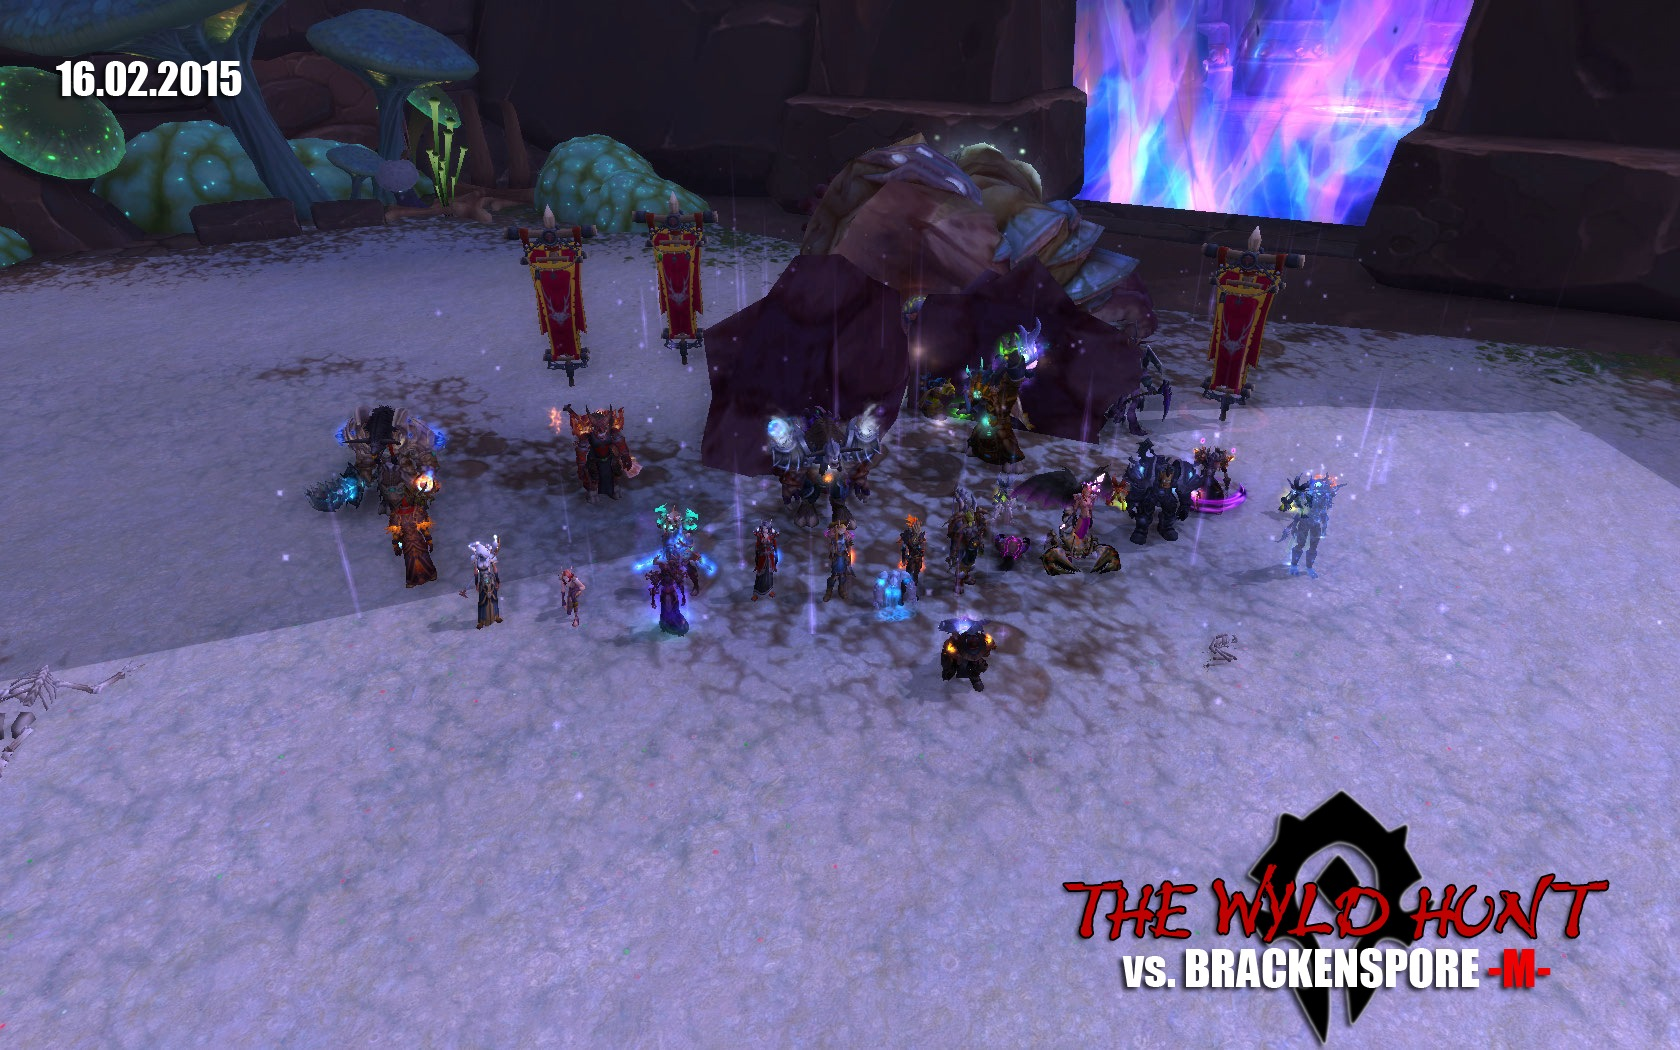 Brackenspore Mythic